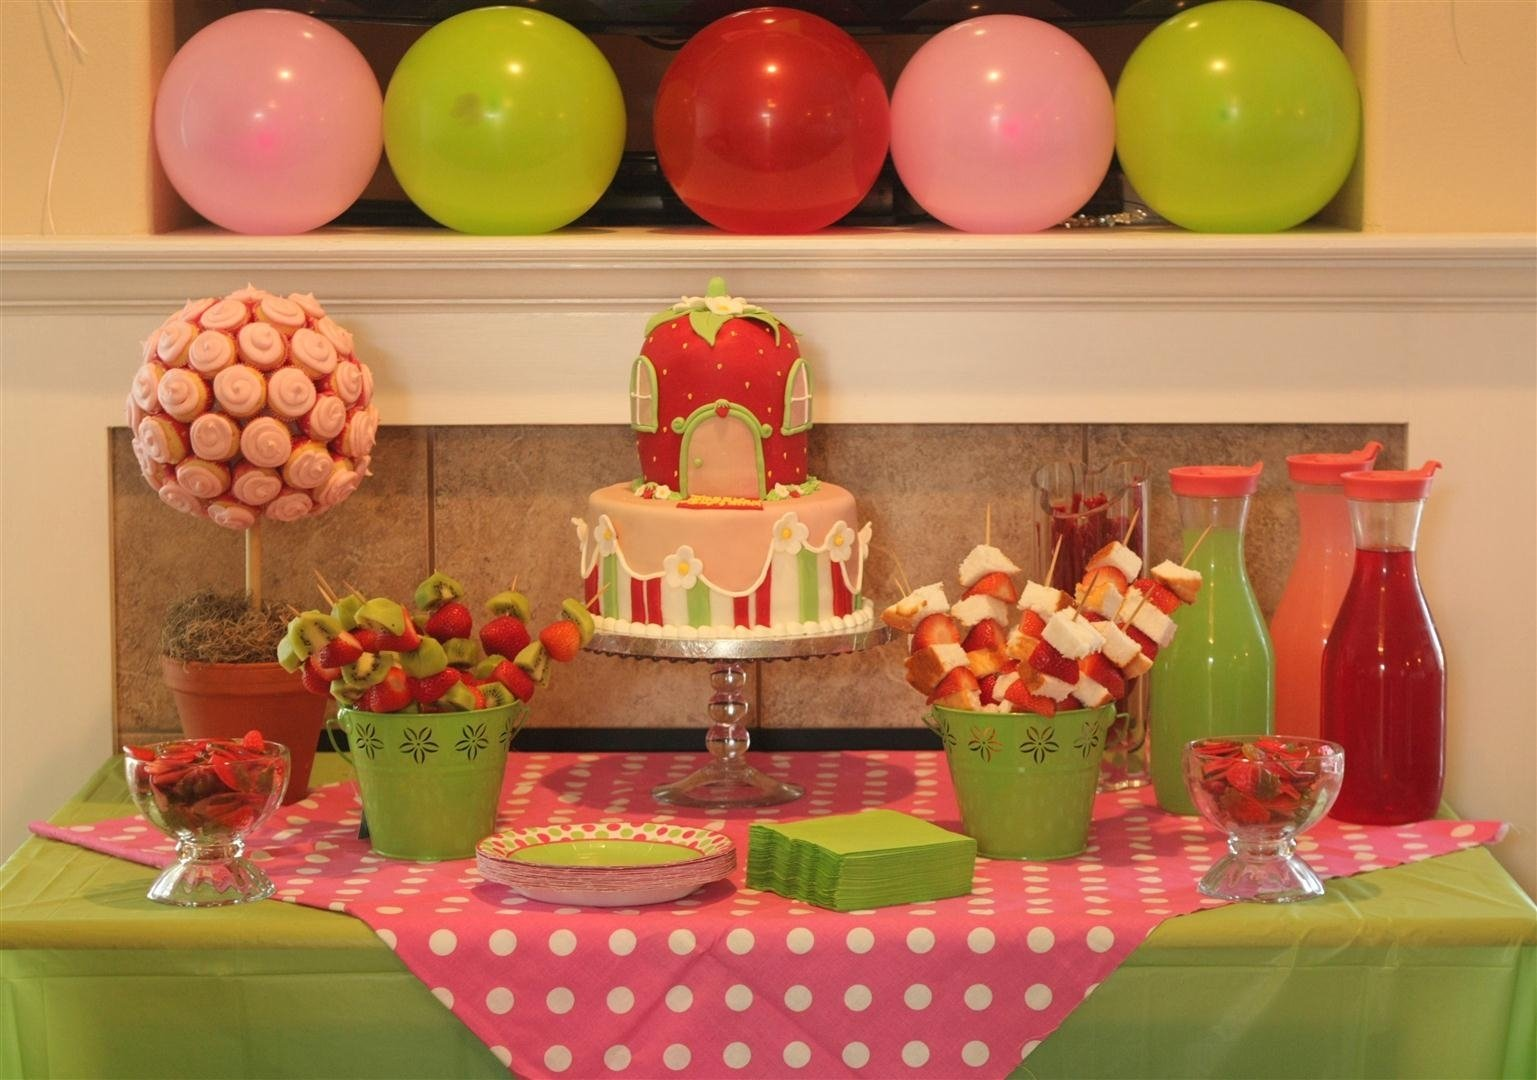 10 Attractive Strawberry Shortcake Birthday Party Ideas patty cakes bakery strawberry shortcake birthday party 2021